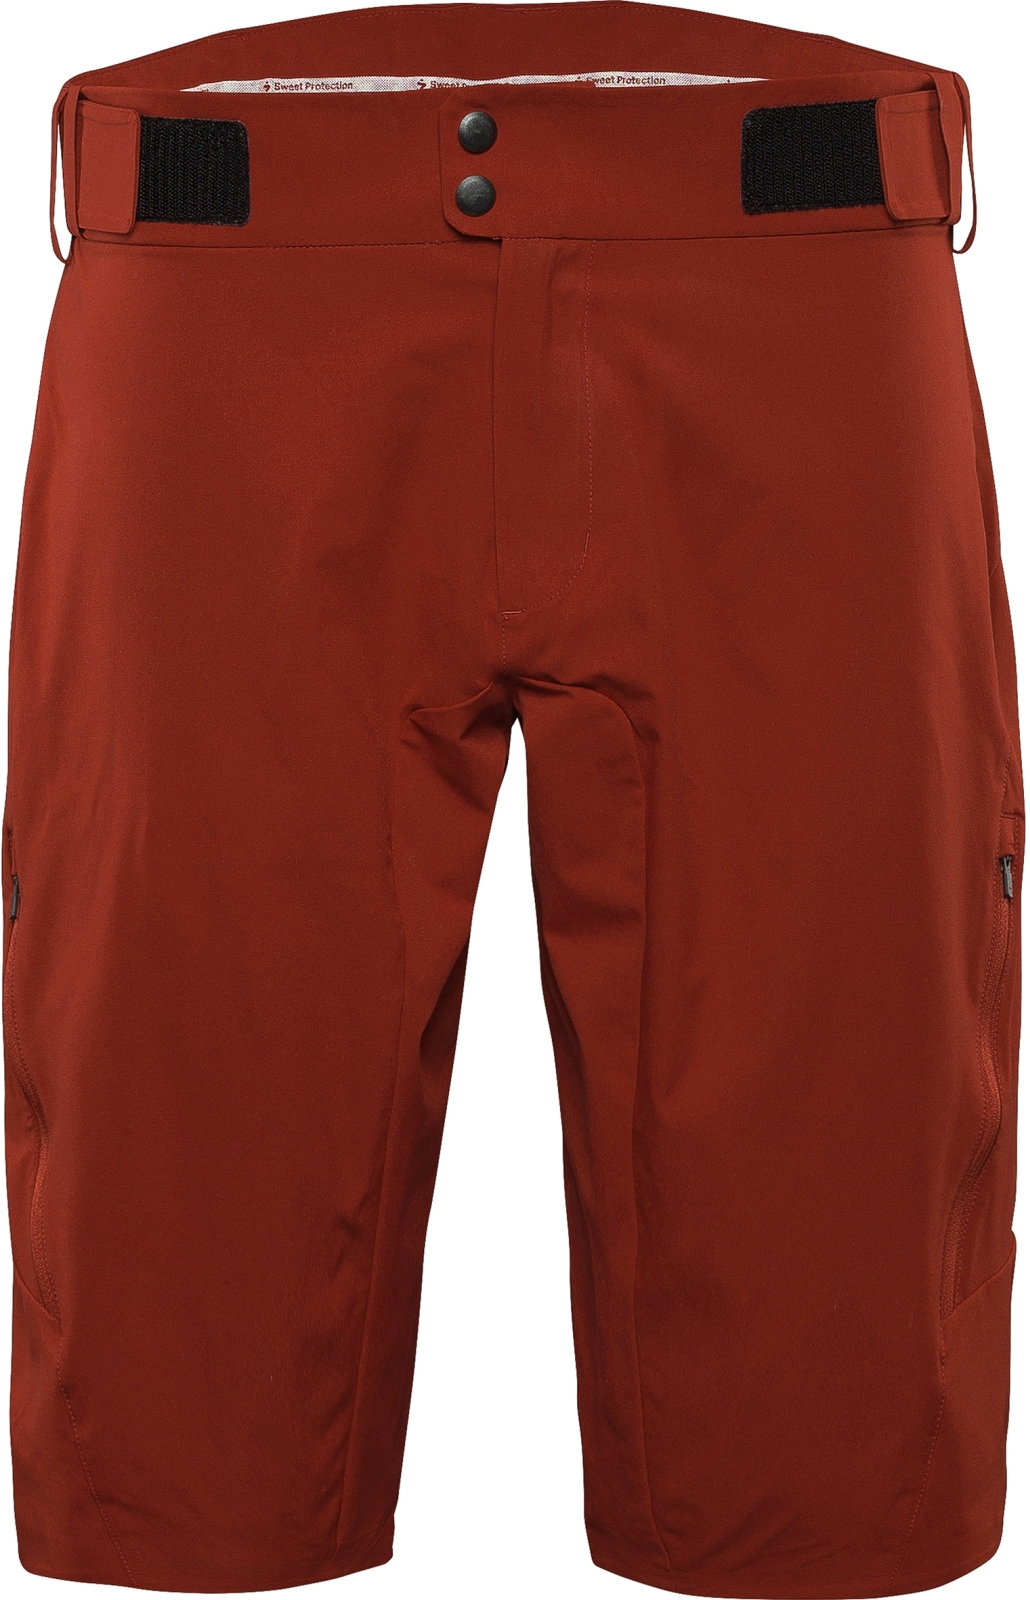 Sweet Protection Hunter Light Shorts M - earth red M